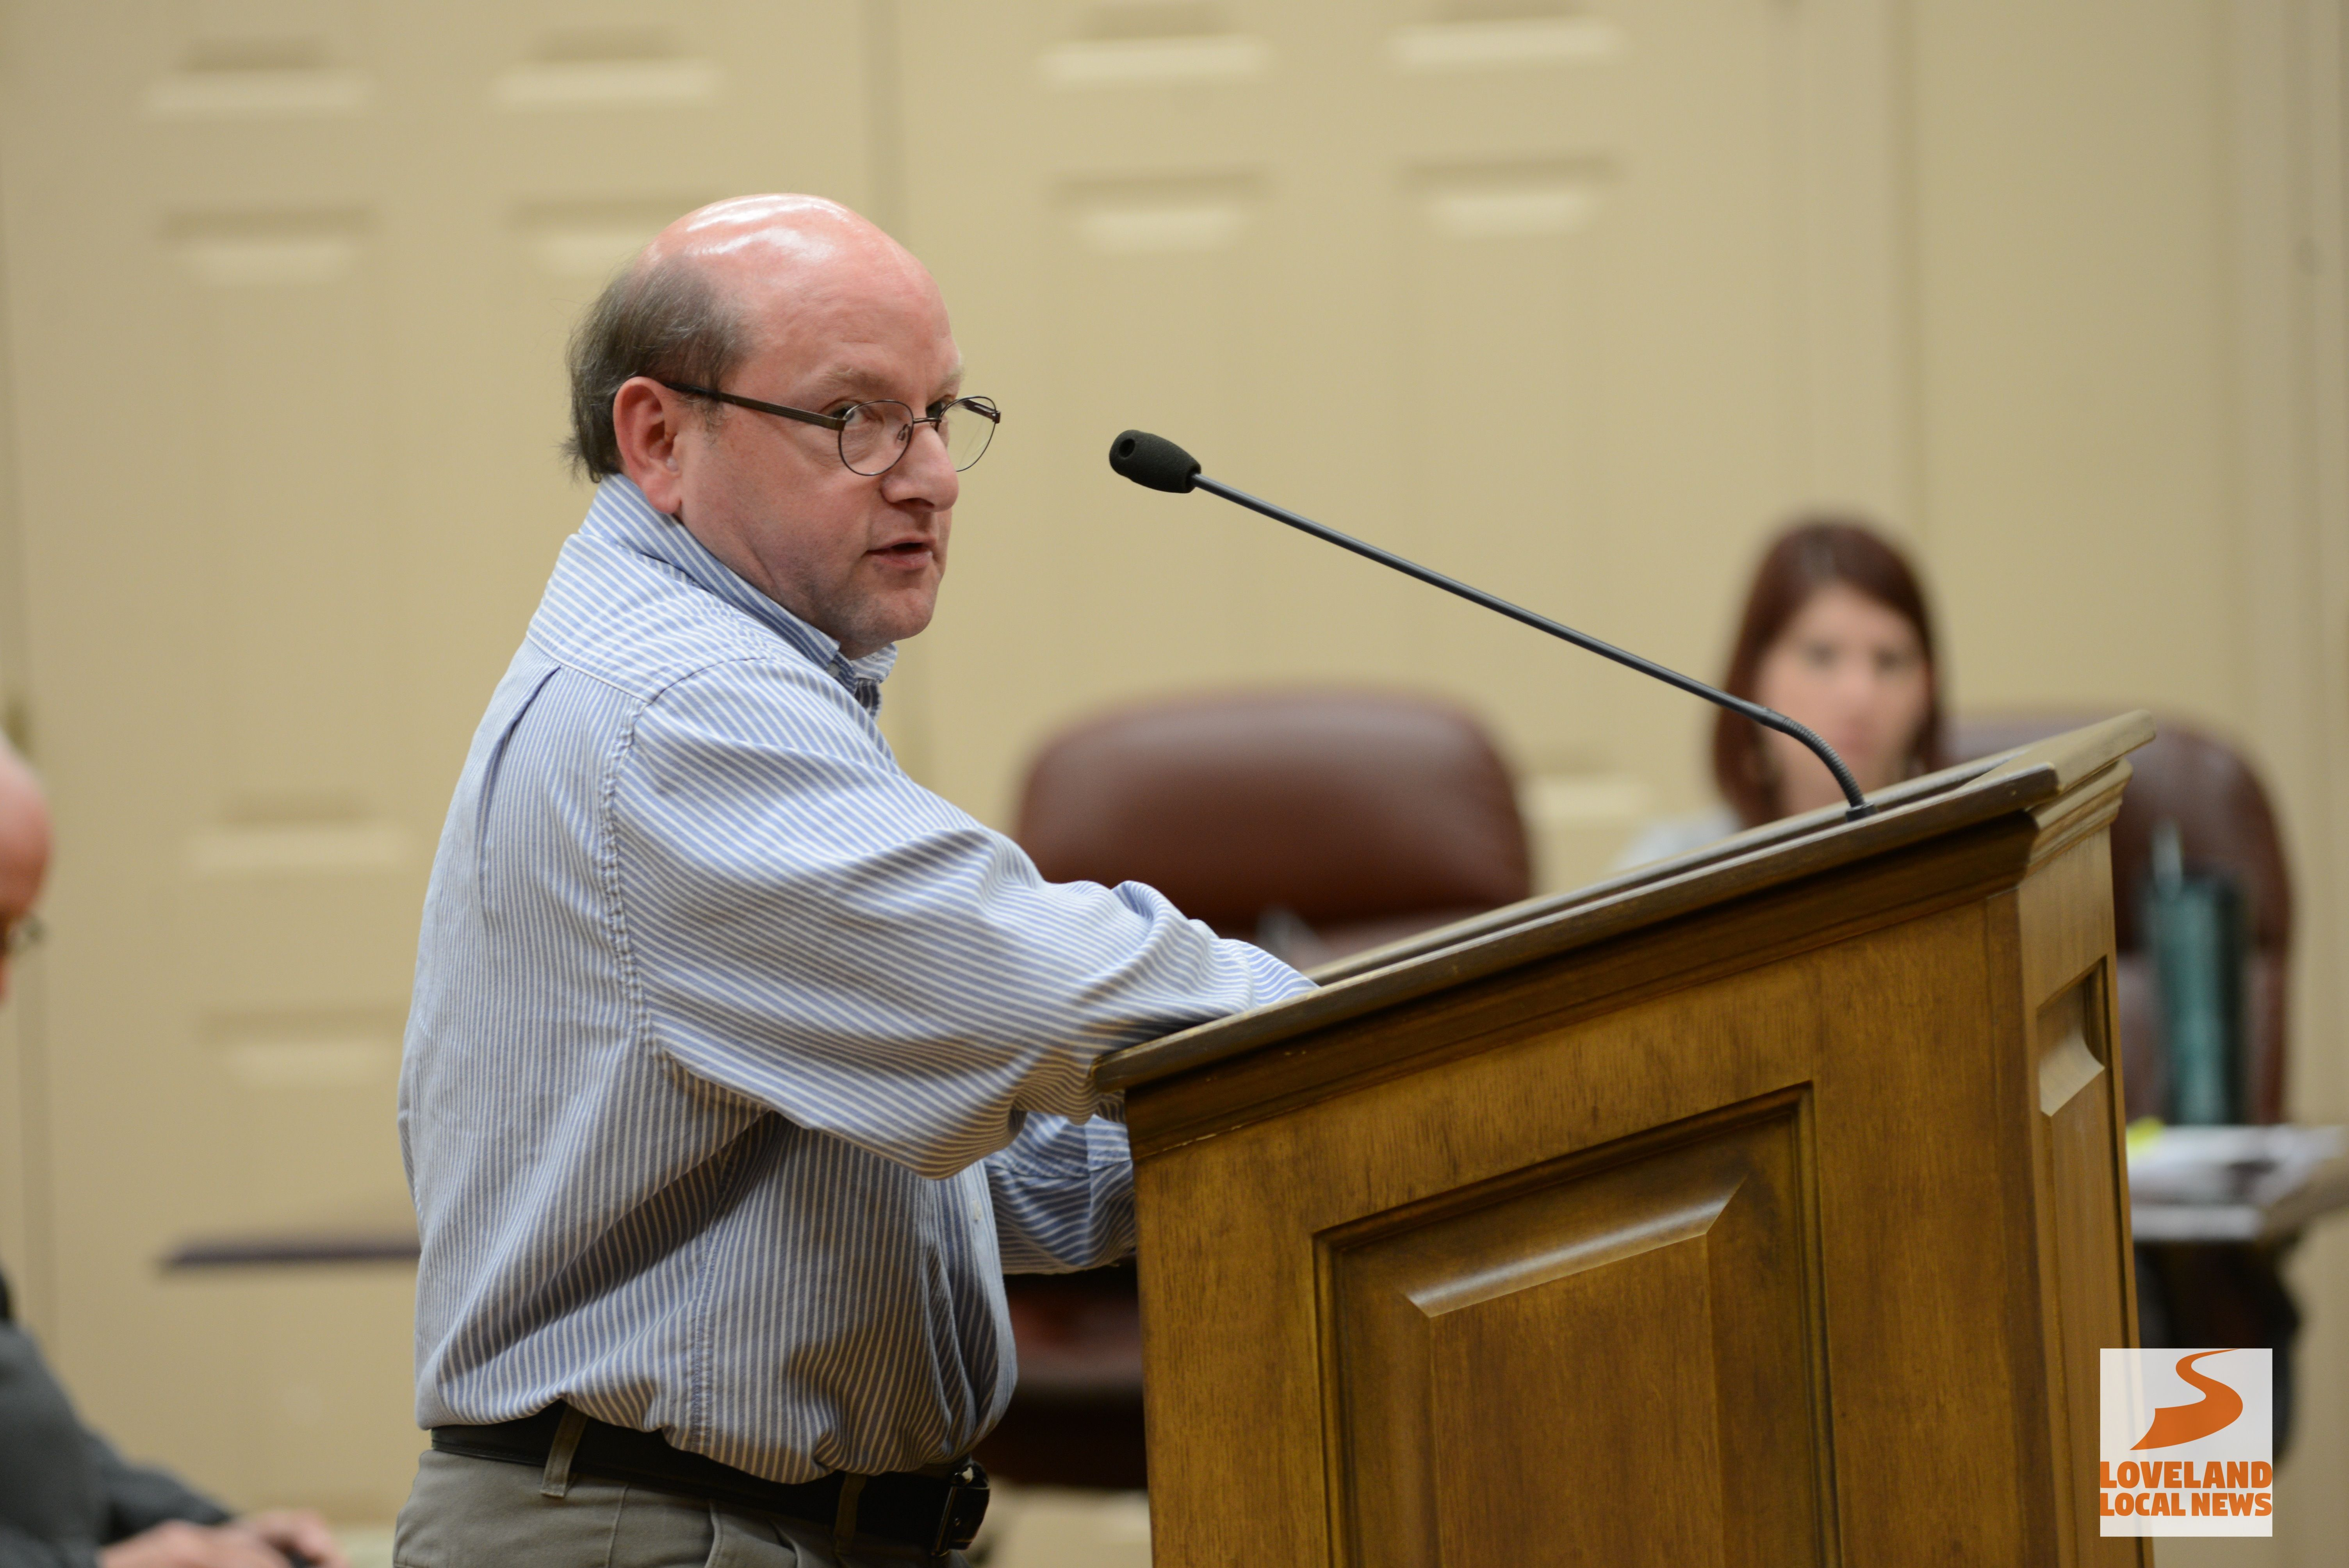 Todd Osborne A Former Loveland City Council Member And Frequent Meeting Attendee Addresses The Government Body During The Publ Loveland Government Local News